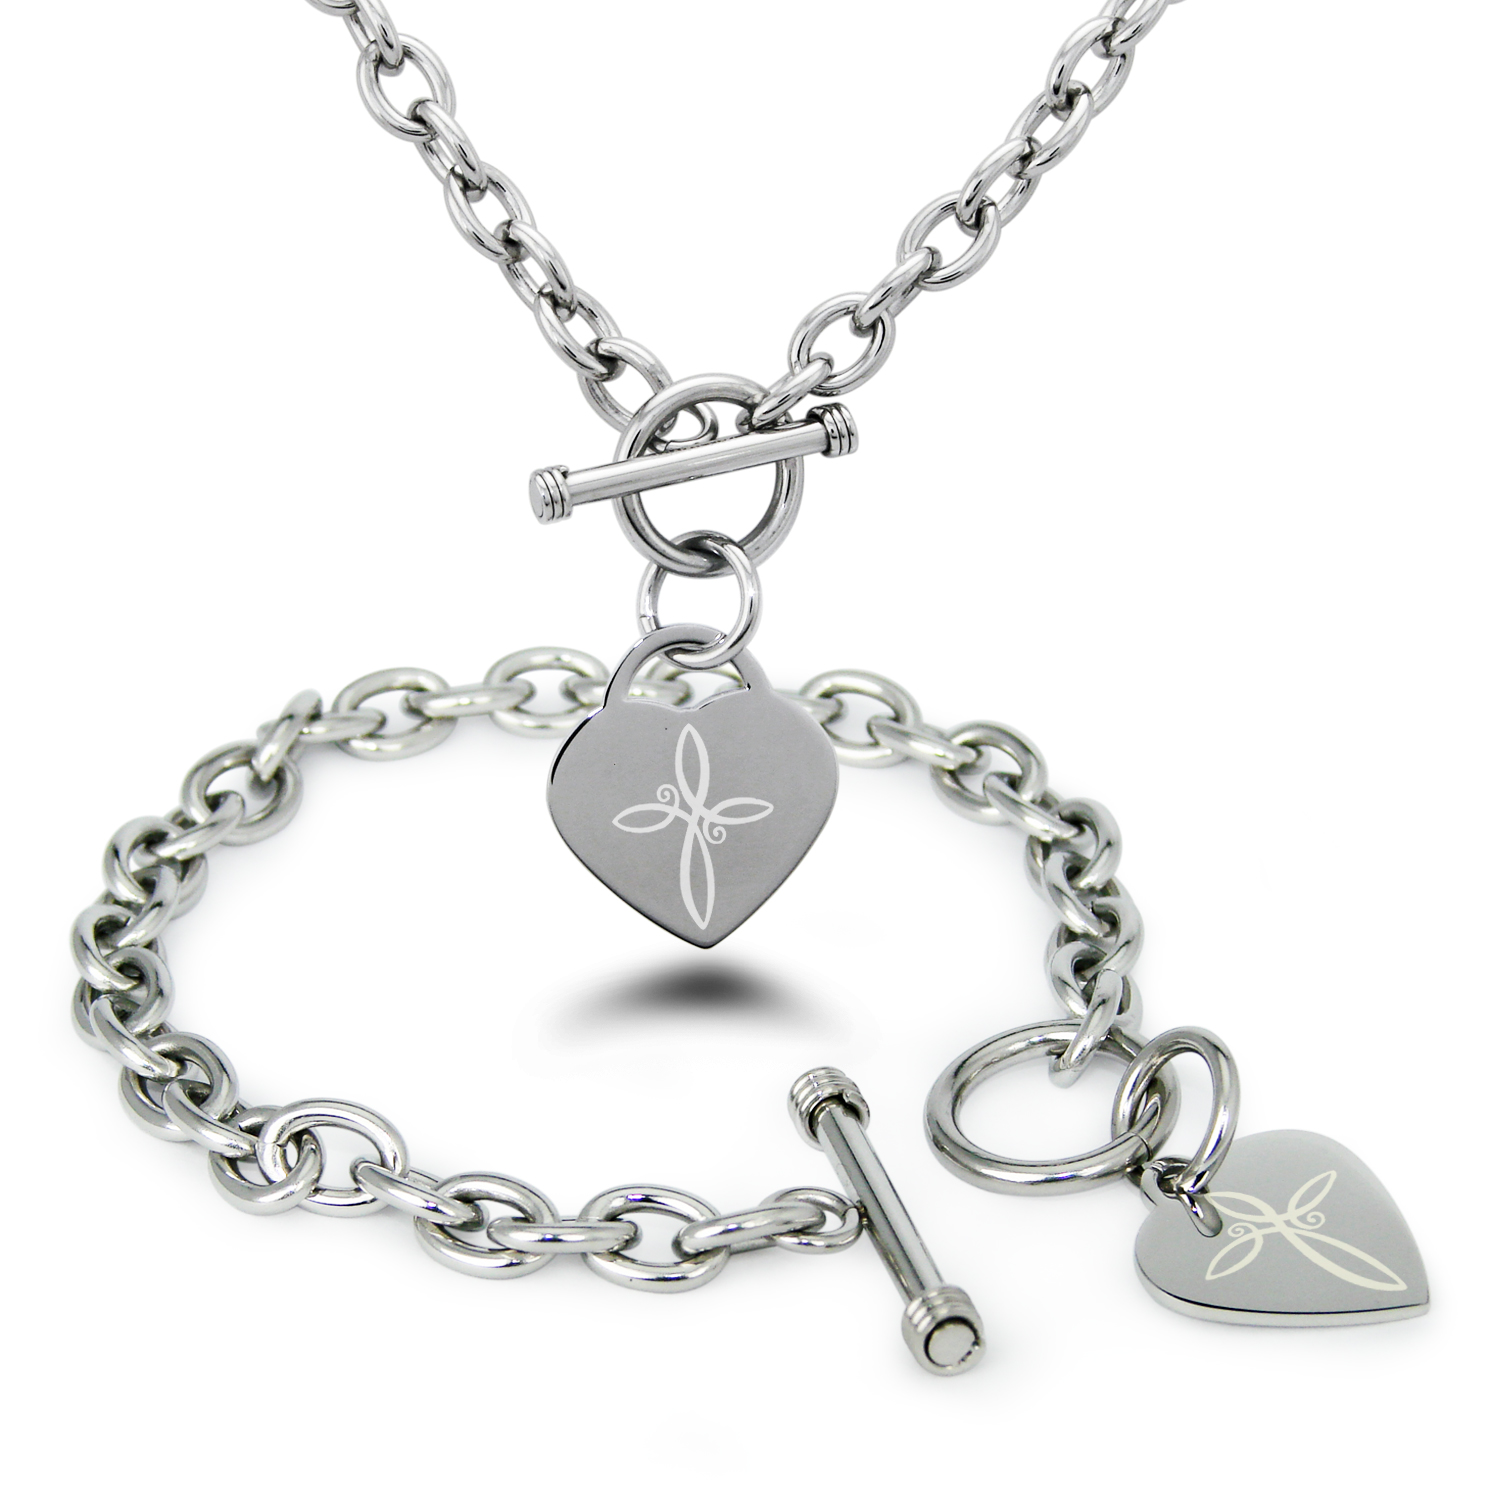 Stainless Steel Infinity Cross Symbol Heart Charm Toggle Bracelet & Necklace